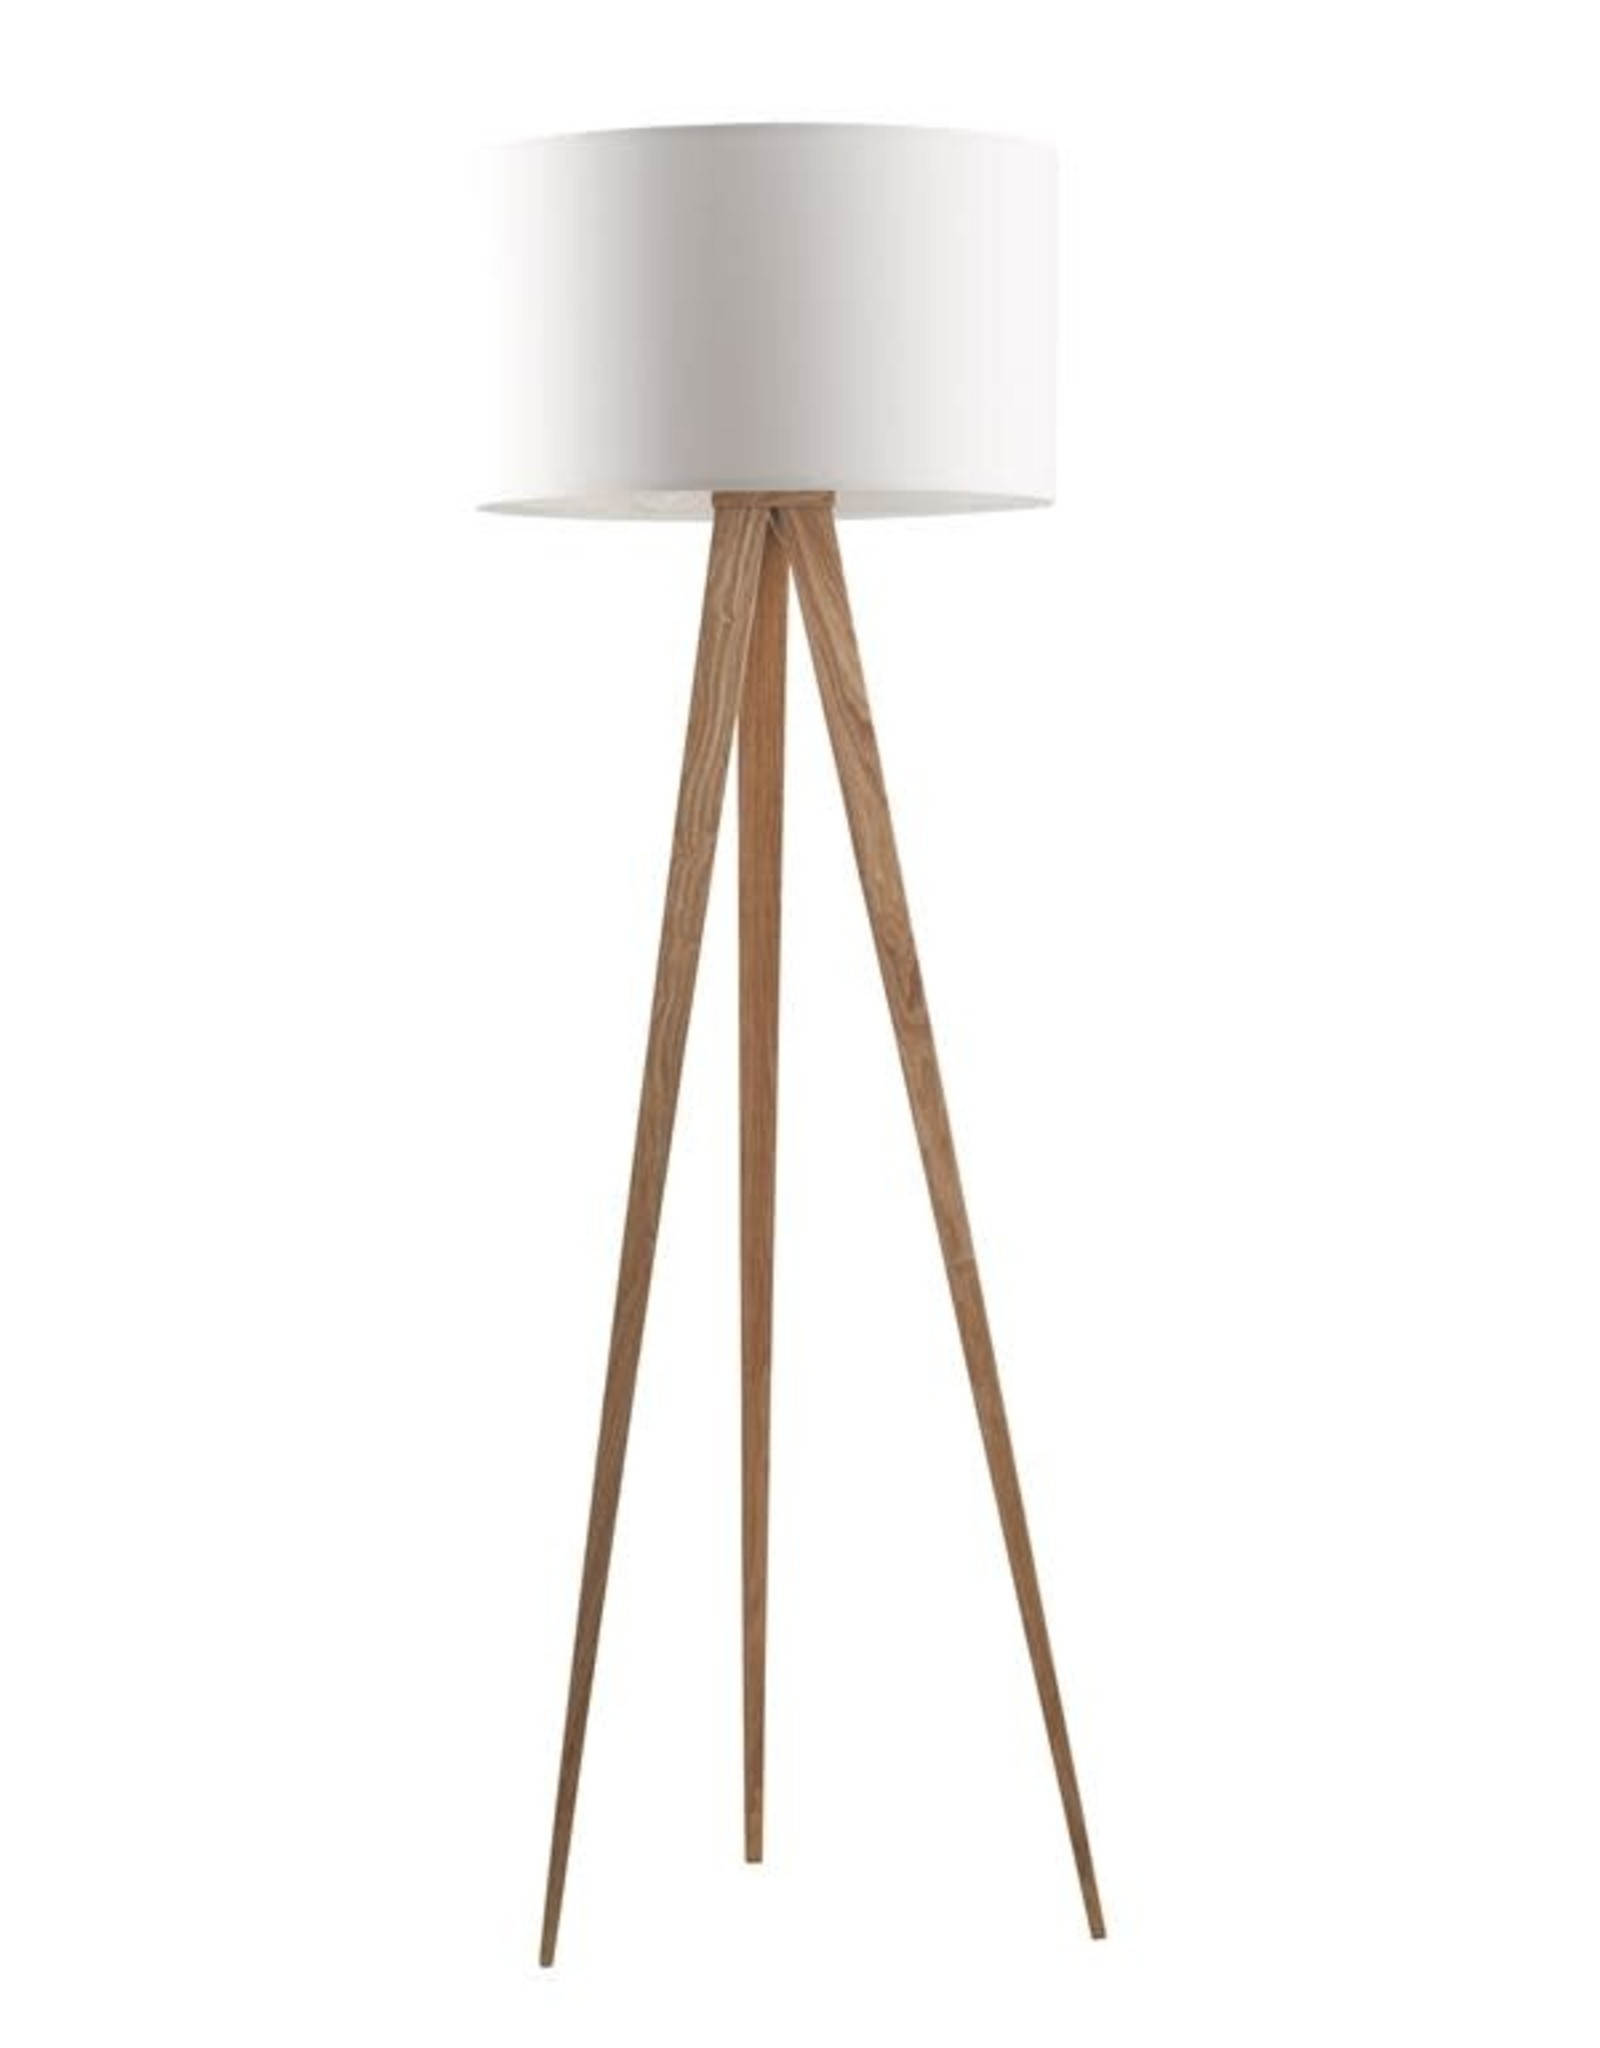 Zuiver Zuiver - Floor lamp tripod White - wood legs